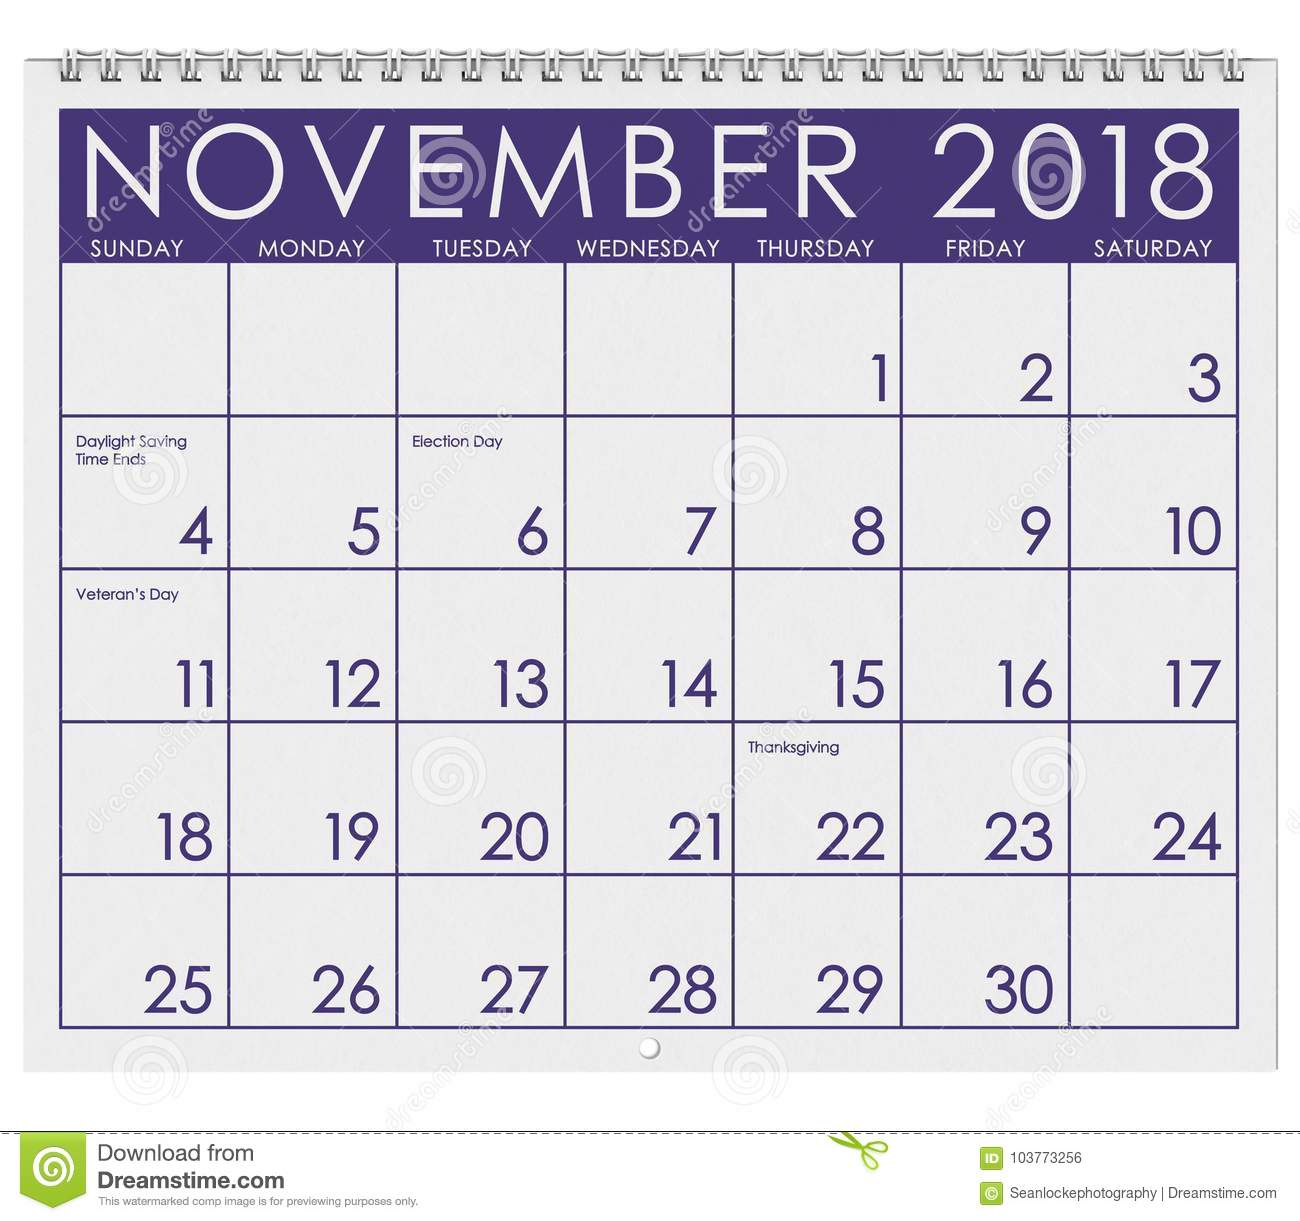 download 2018 calendar month of november with thanksgiving stock illustration illustration of 2018